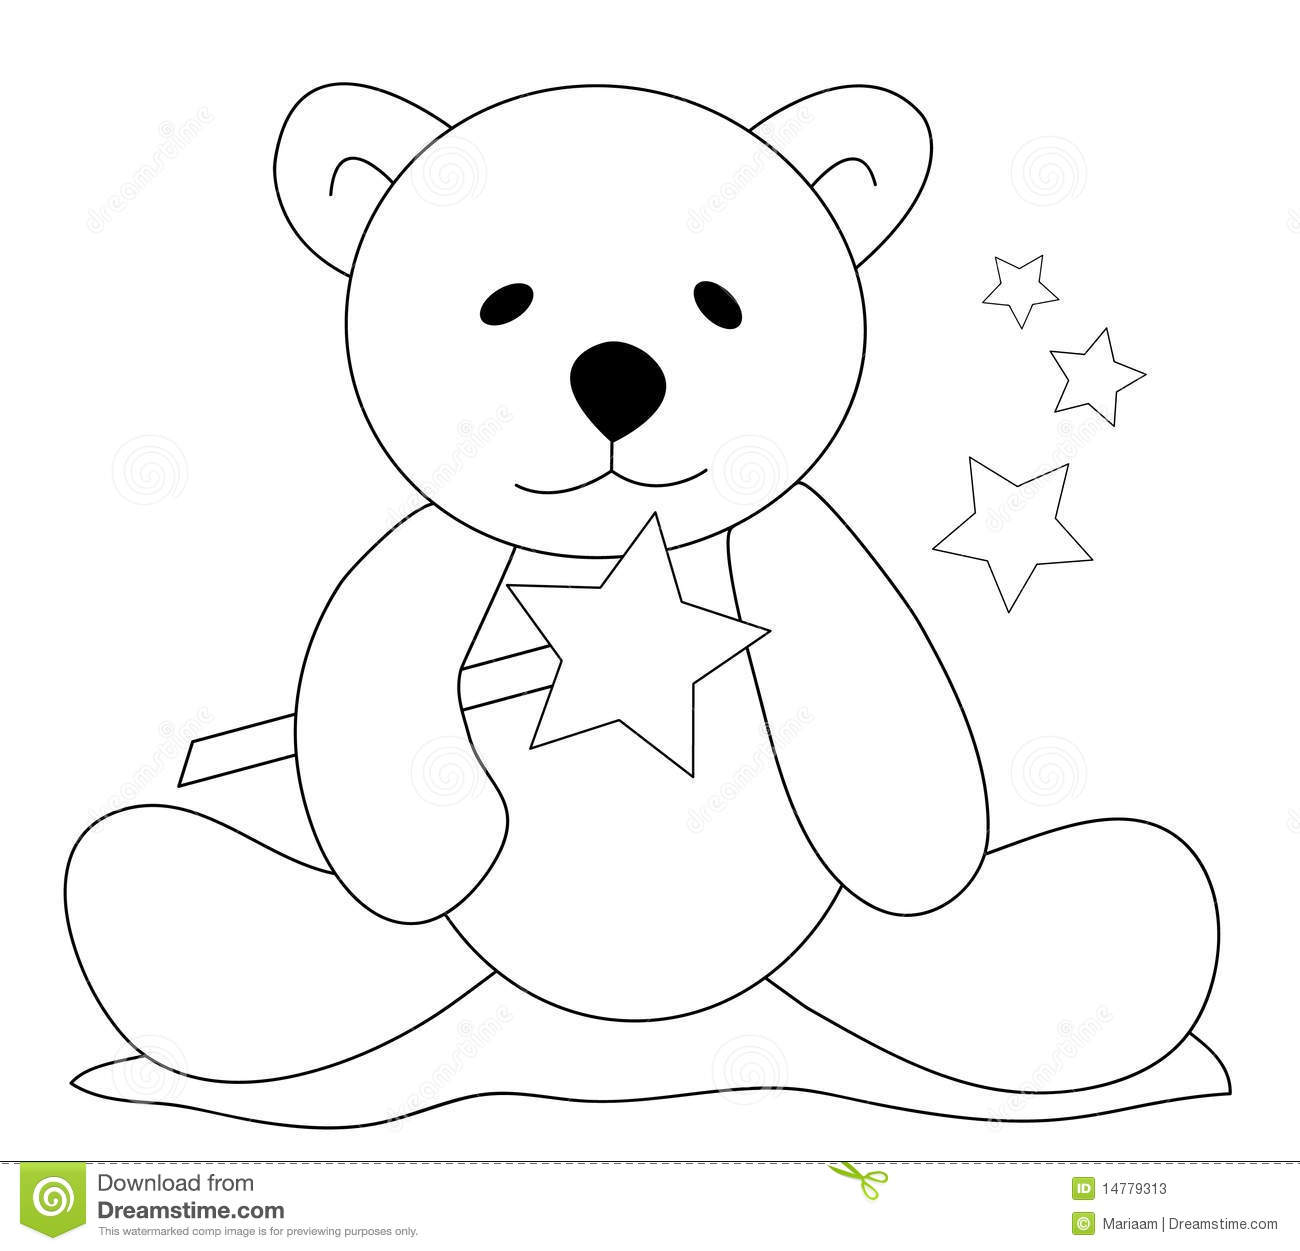 Black & white sketch of a teddy bear sitting on the ground and holding ...